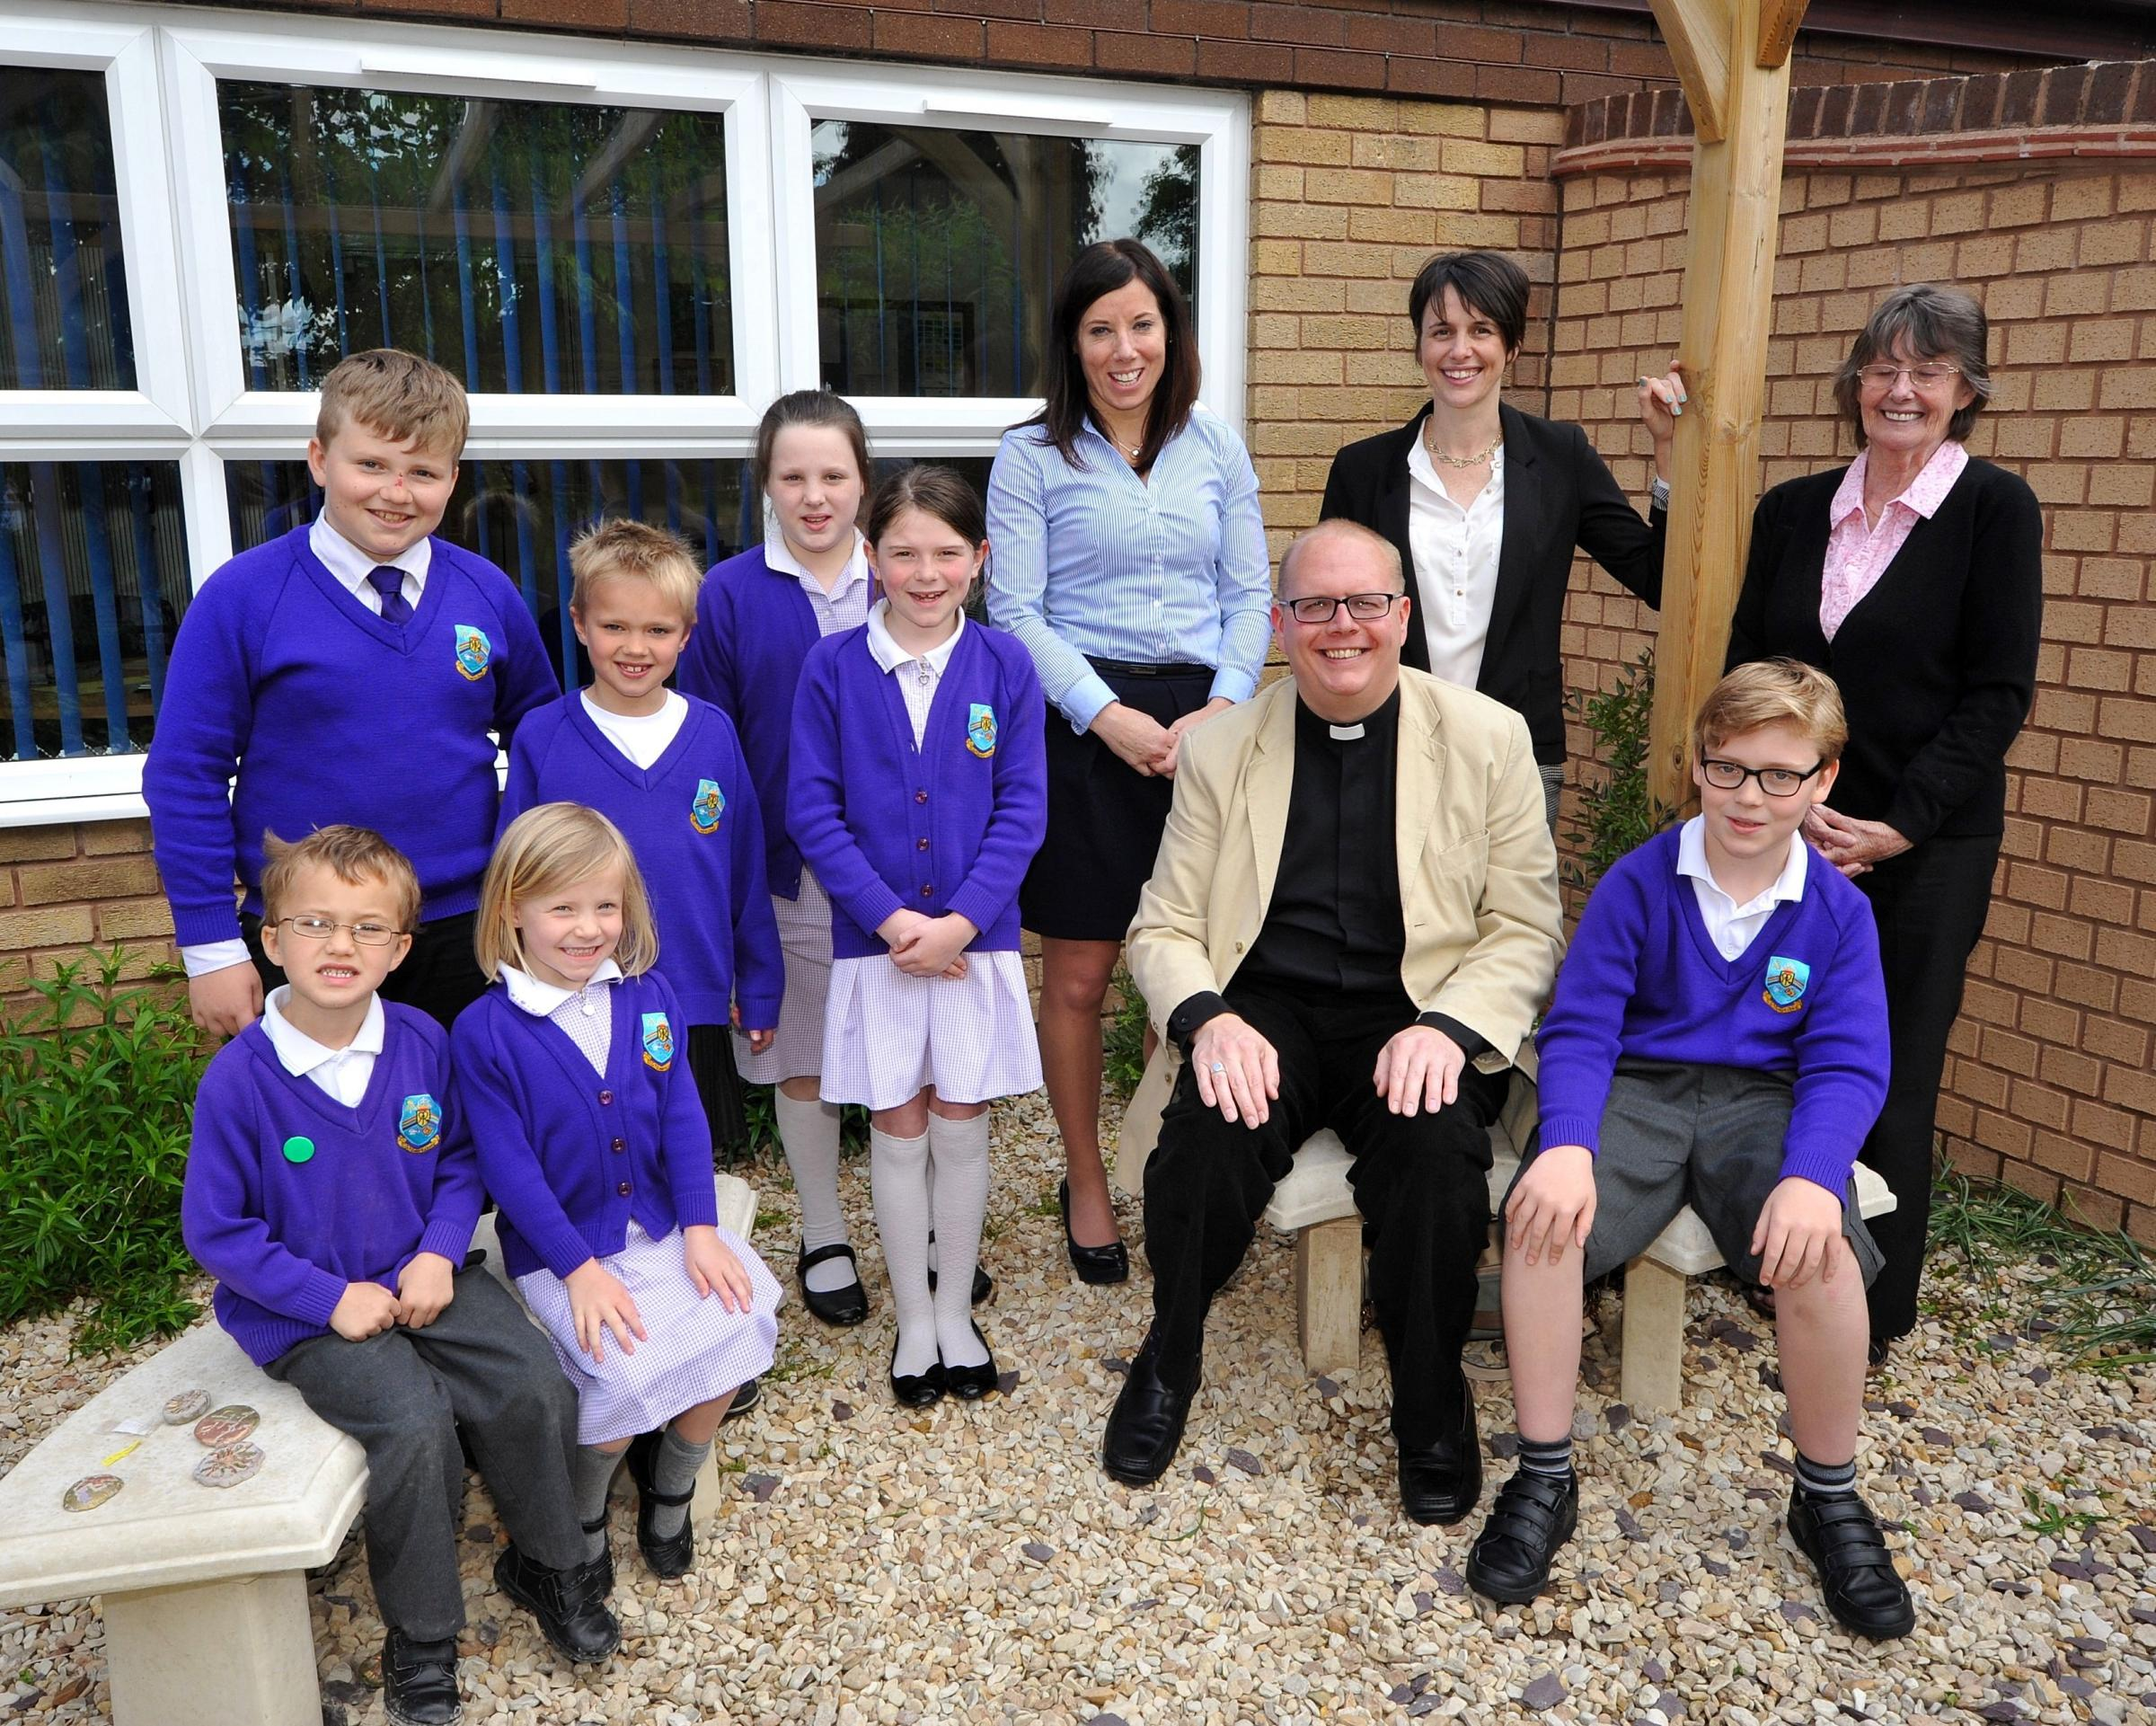 Our Lady Queen of Peace RC Primary School in St Johns has received a good report for it's religious provision.Head Teacher, Gwen Fennell, RE Co-ordinator, Katie Howarth, Governor, Vivienne Cause, Chairman of Governors, Father Paul Whieldon with pupils